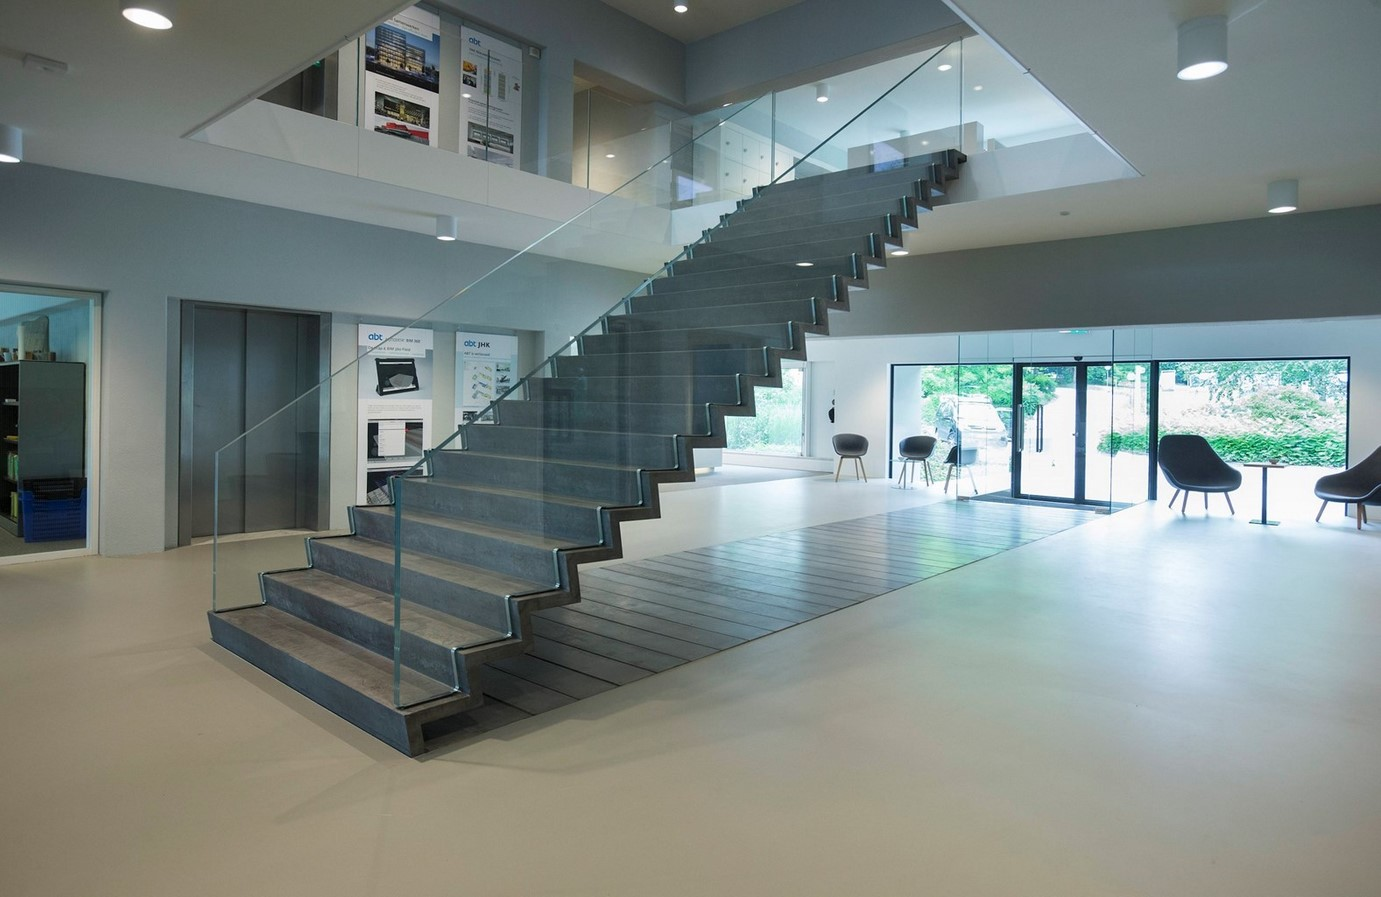 25 Concrete Staircases for Small Houses - sheet17